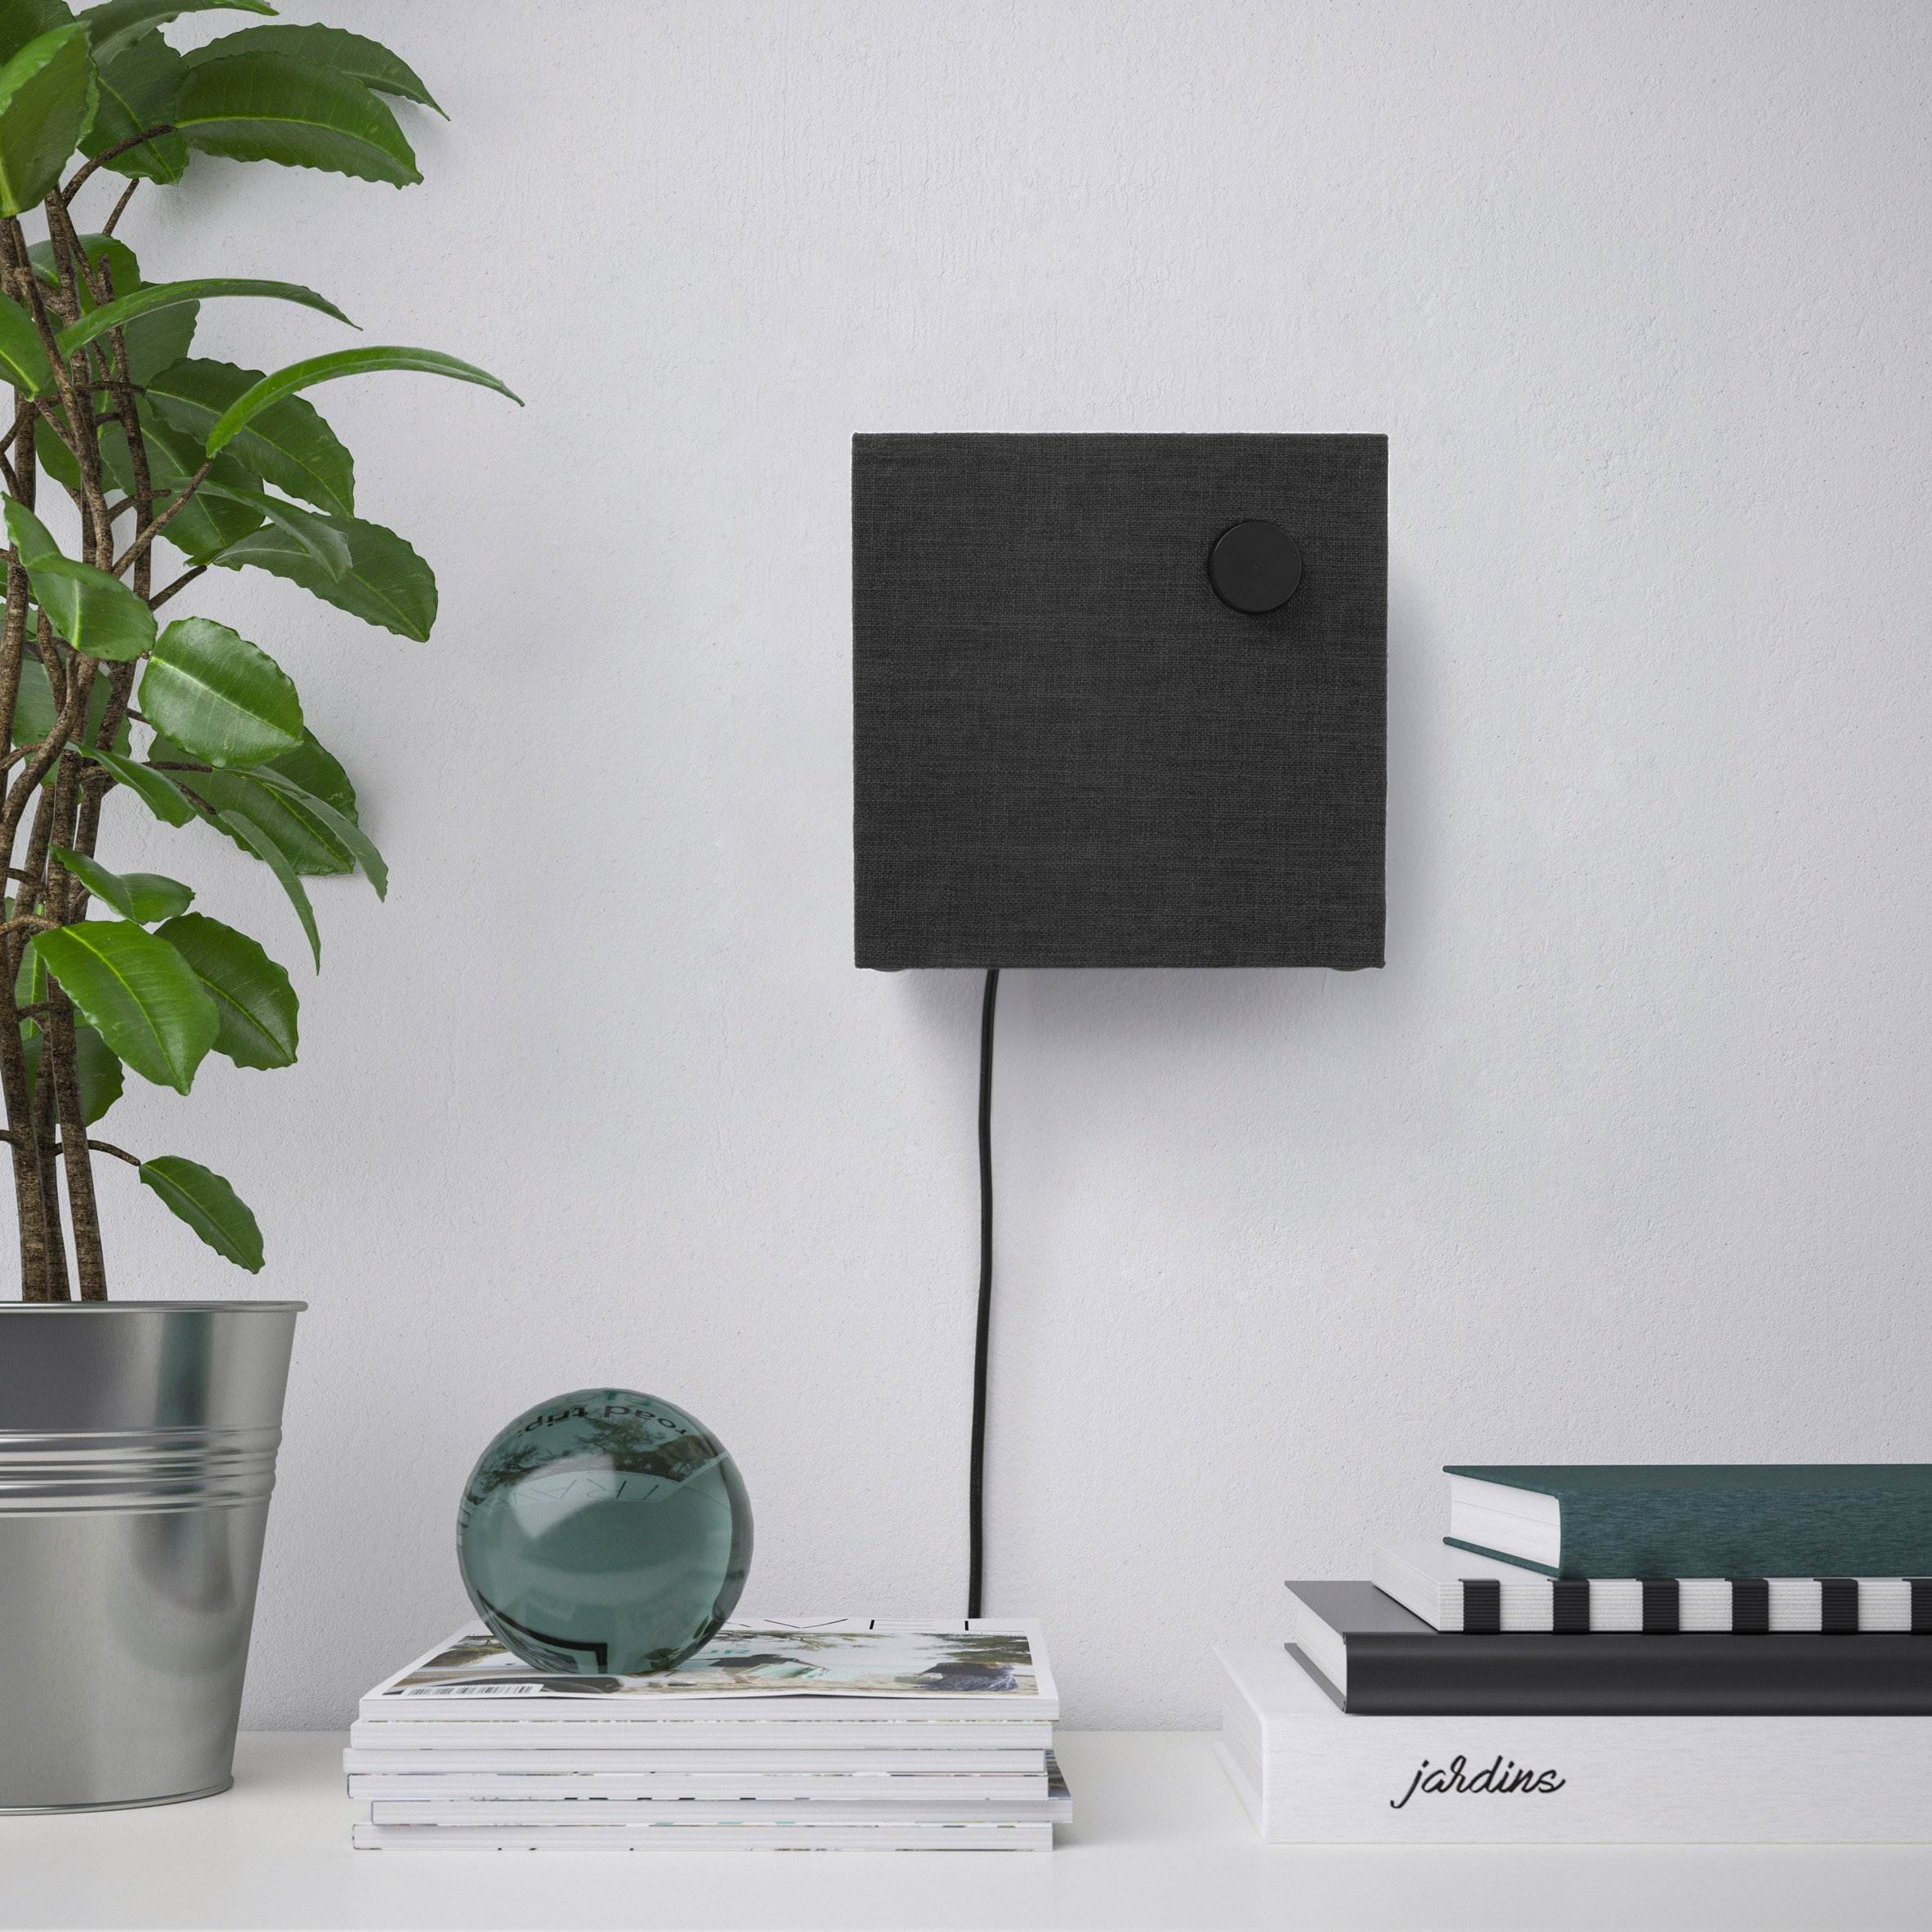 IKEA's first Bluetooth speakers are here